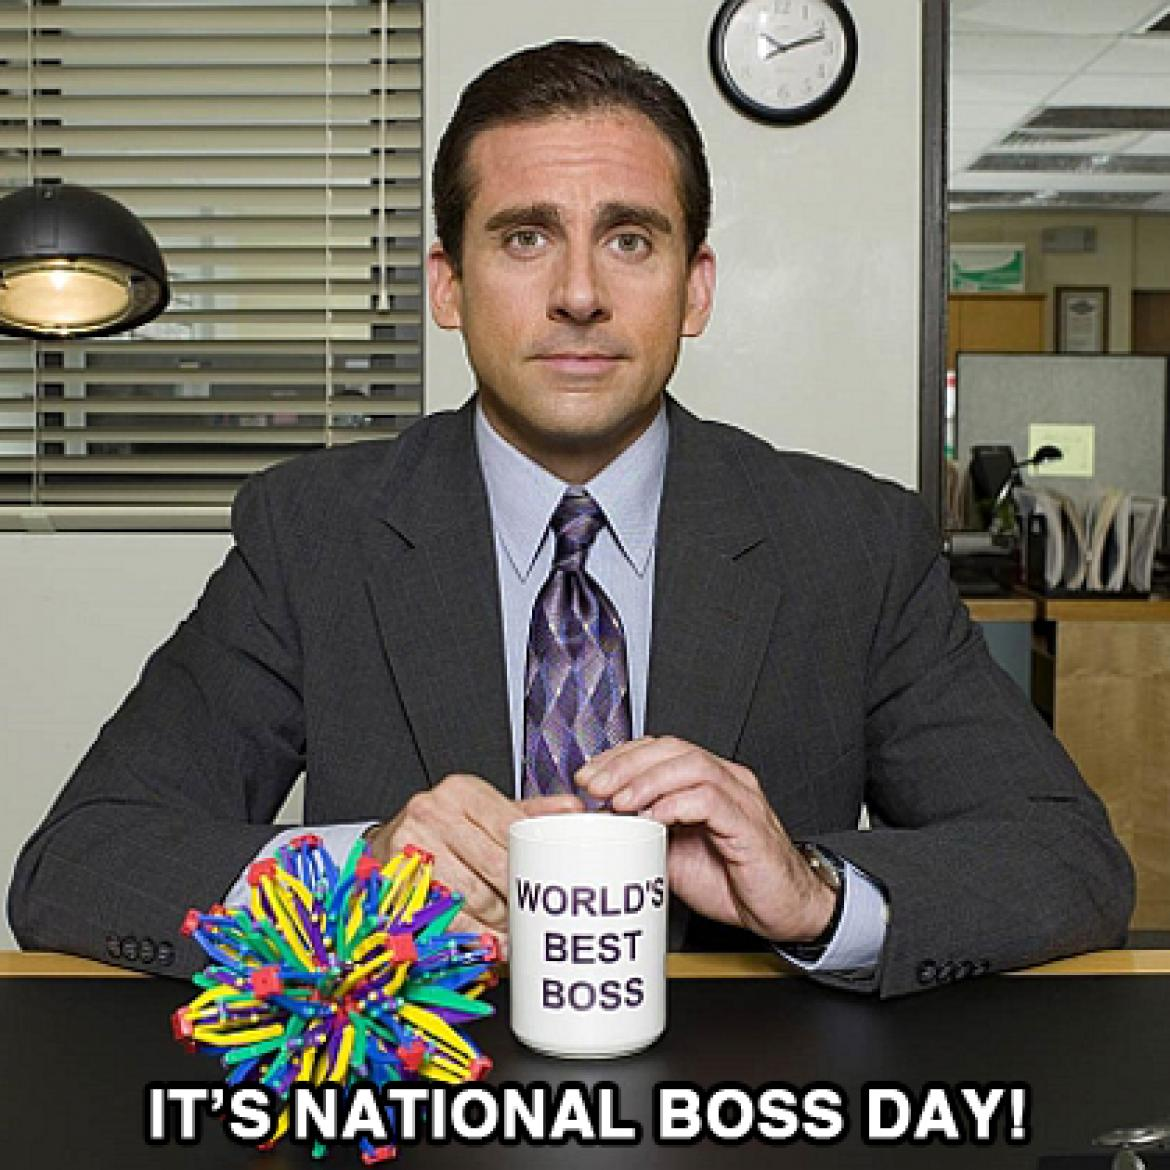 14360 national bosses day 2014 15 memes to celebrate, or not, your boss